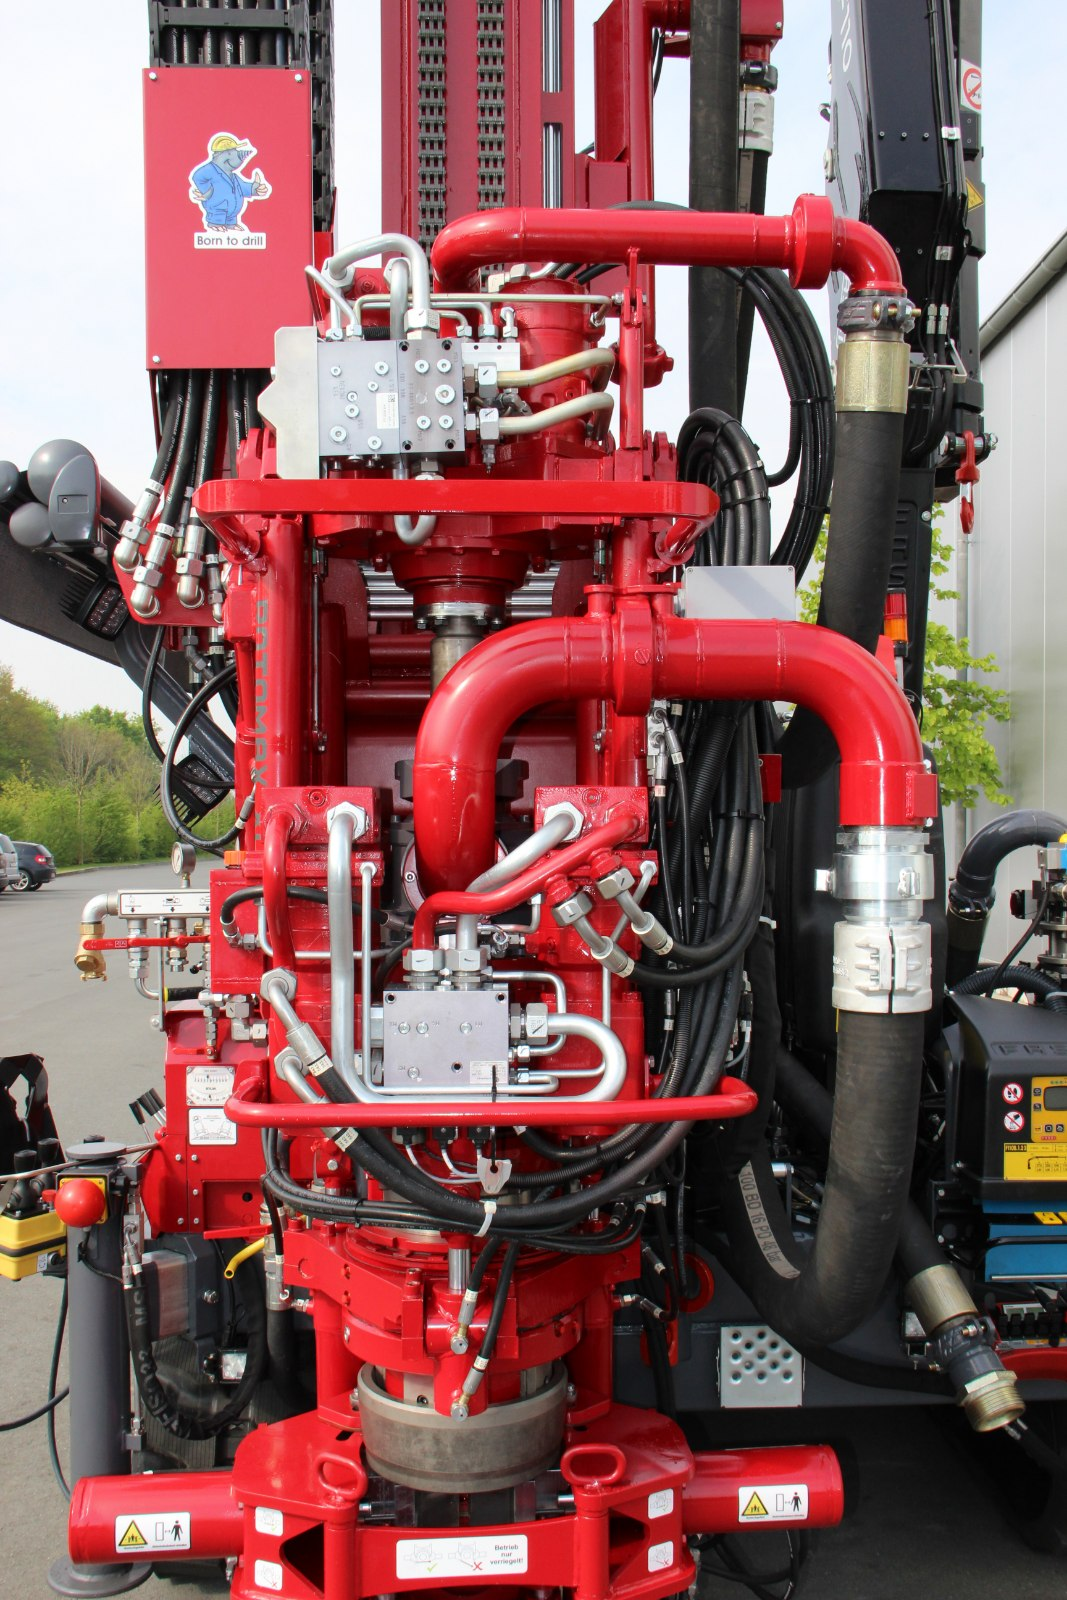 Geotec_Bohrtechnik_Drilling_Geothermiebohrung_Hammerbohrungen_Geothermal-drilling-application_Hammer-drilling_Rotomax_XL_GTKi_01-IMG_4993